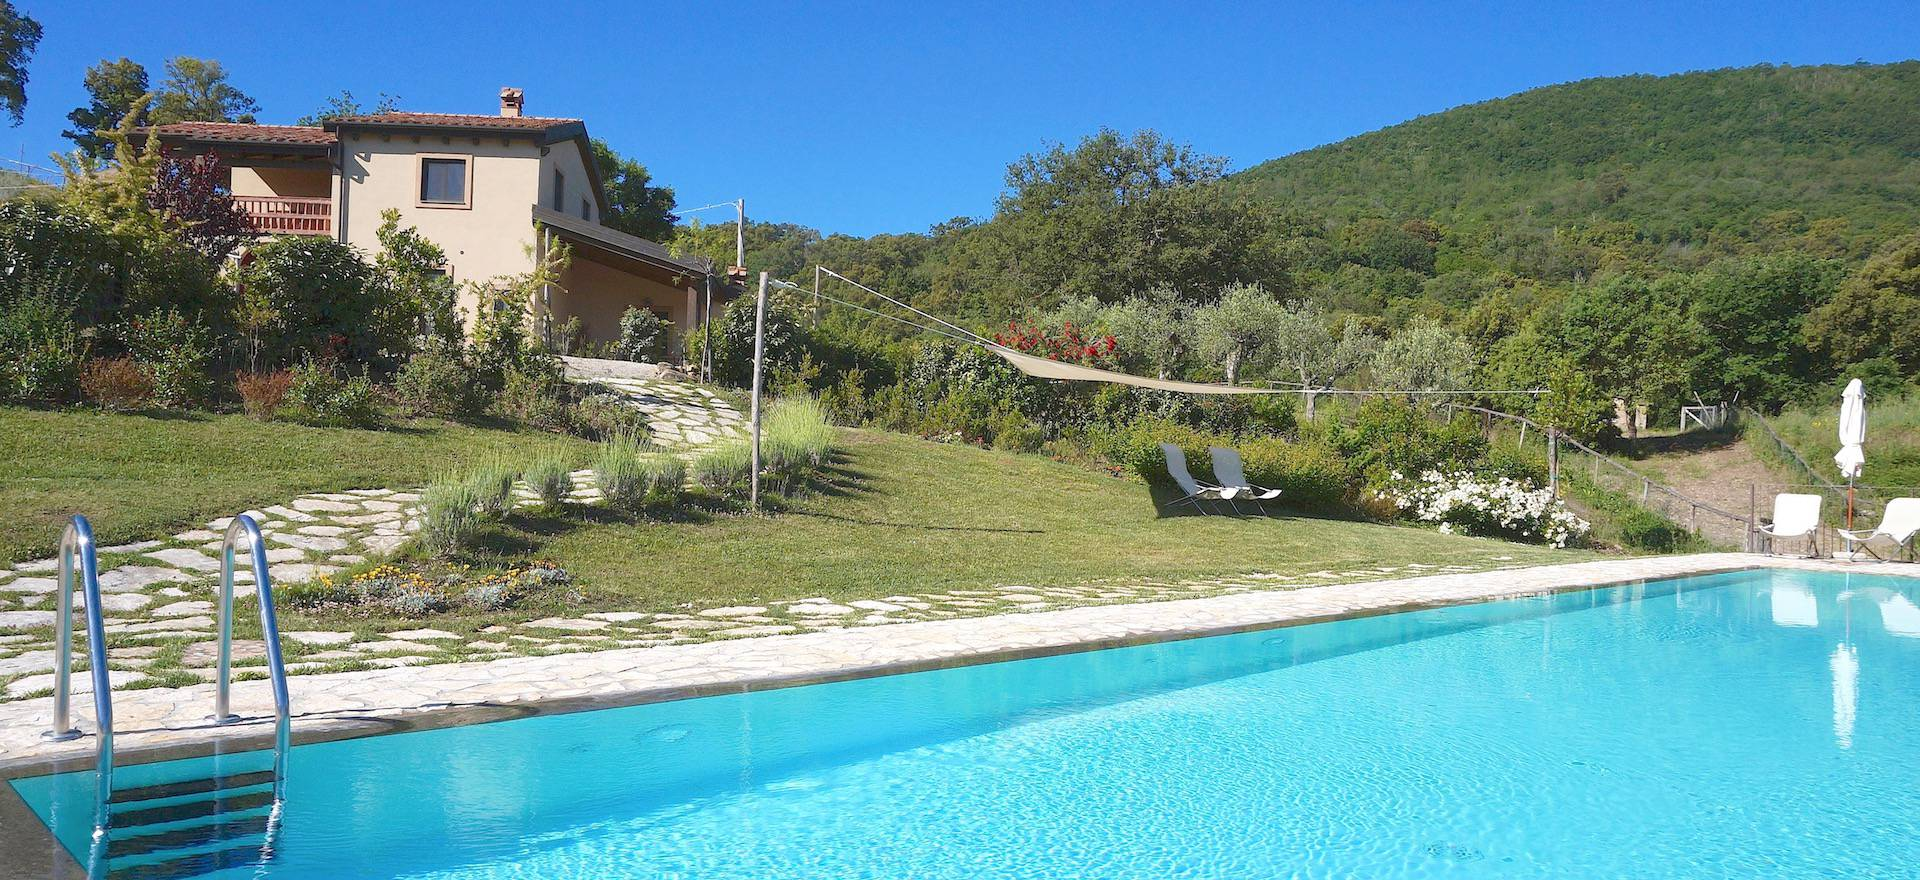 Agriturismo Tuscany Agriturismo with luxury houses on a hill in Tuscany